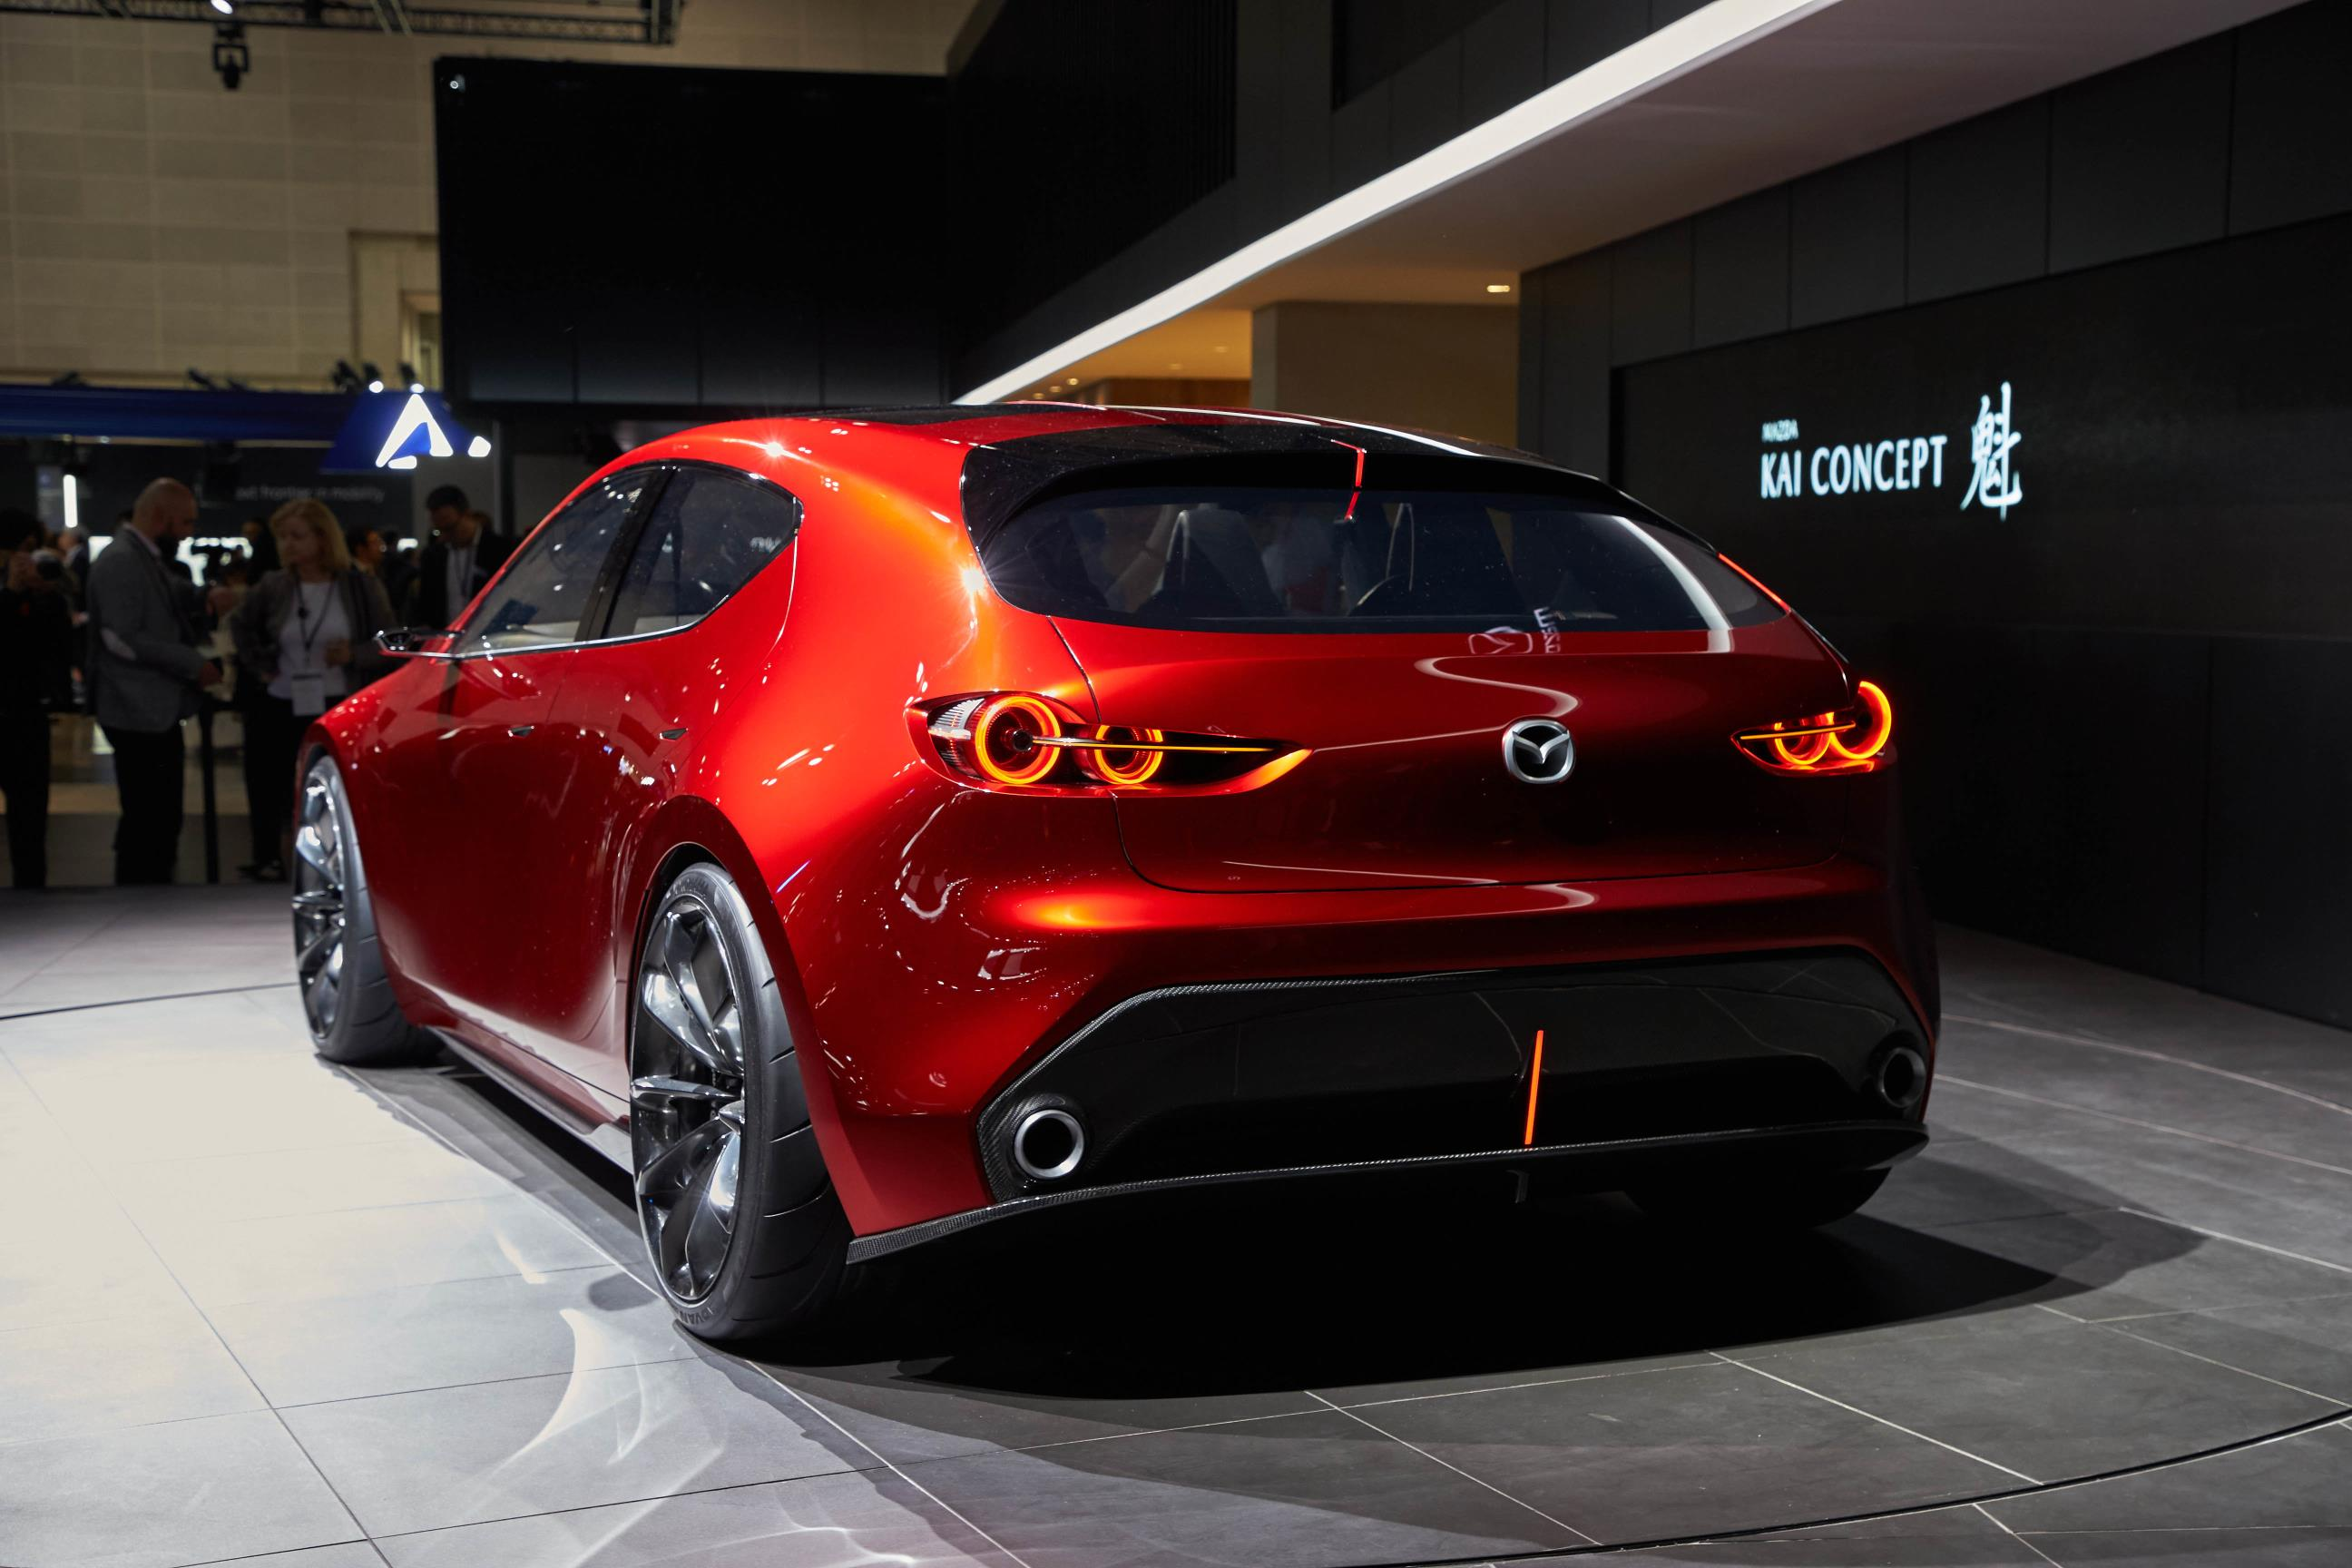 mazda kai and vision coupe concepts reveal carbon fiber in tokyo autoevolution. Black Bedroom Furniture Sets. Home Design Ideas